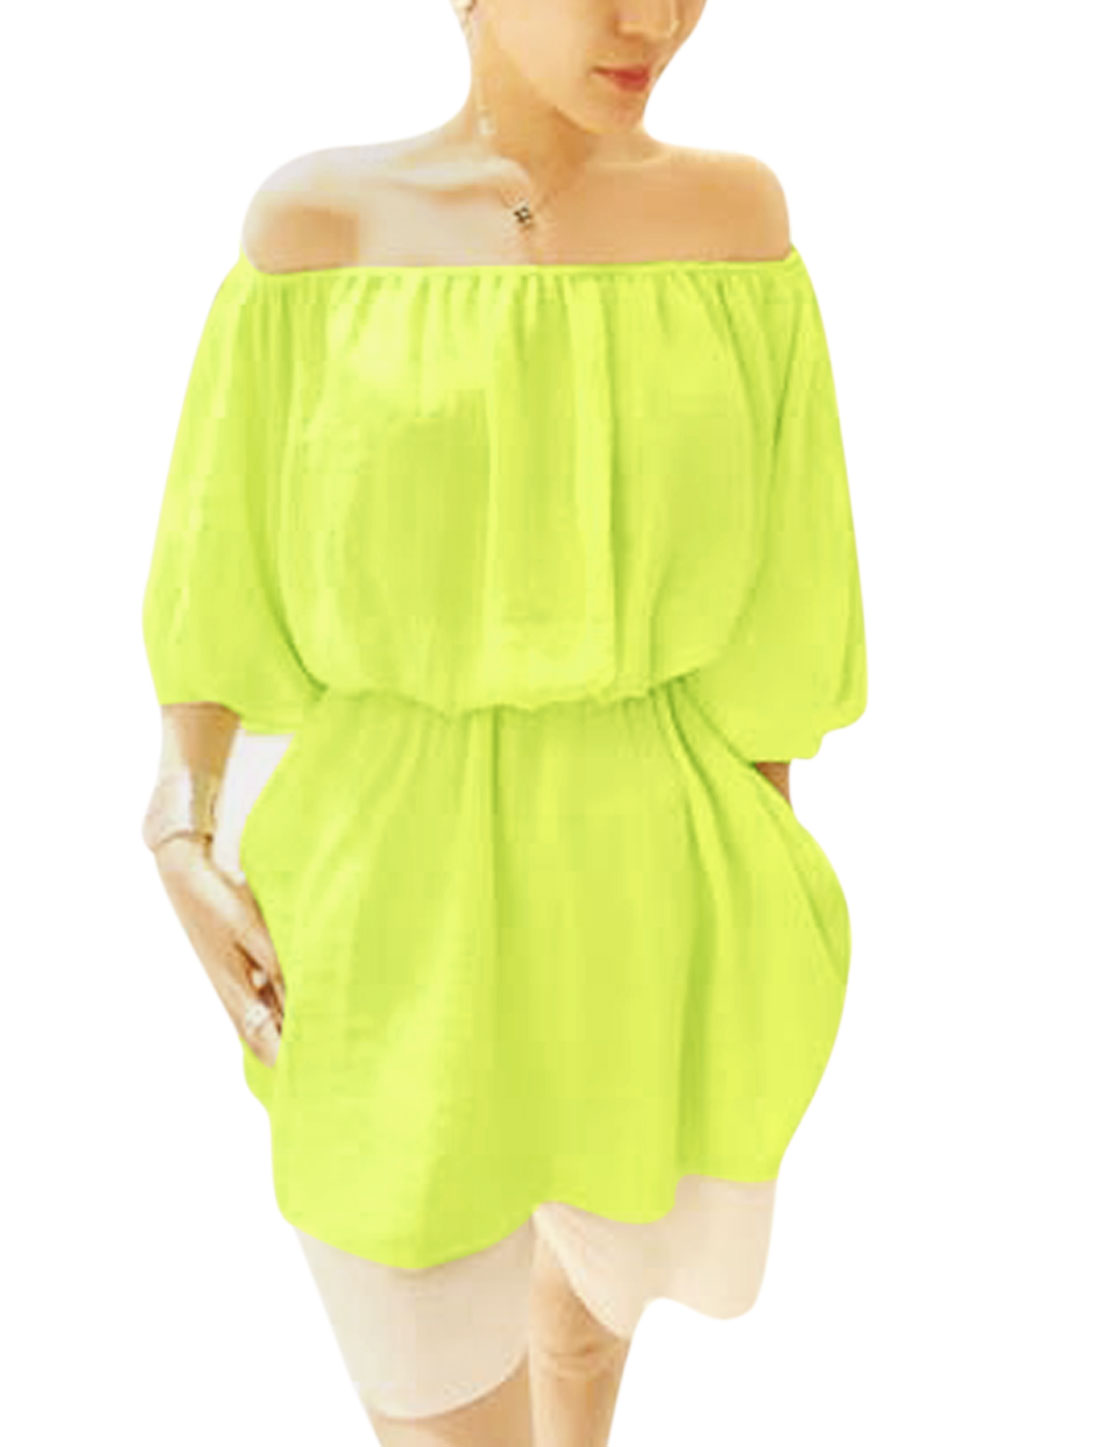 Lady Off Shoulder Puff Sleeve Elastic Waist Tunic Top Green Yellow XS